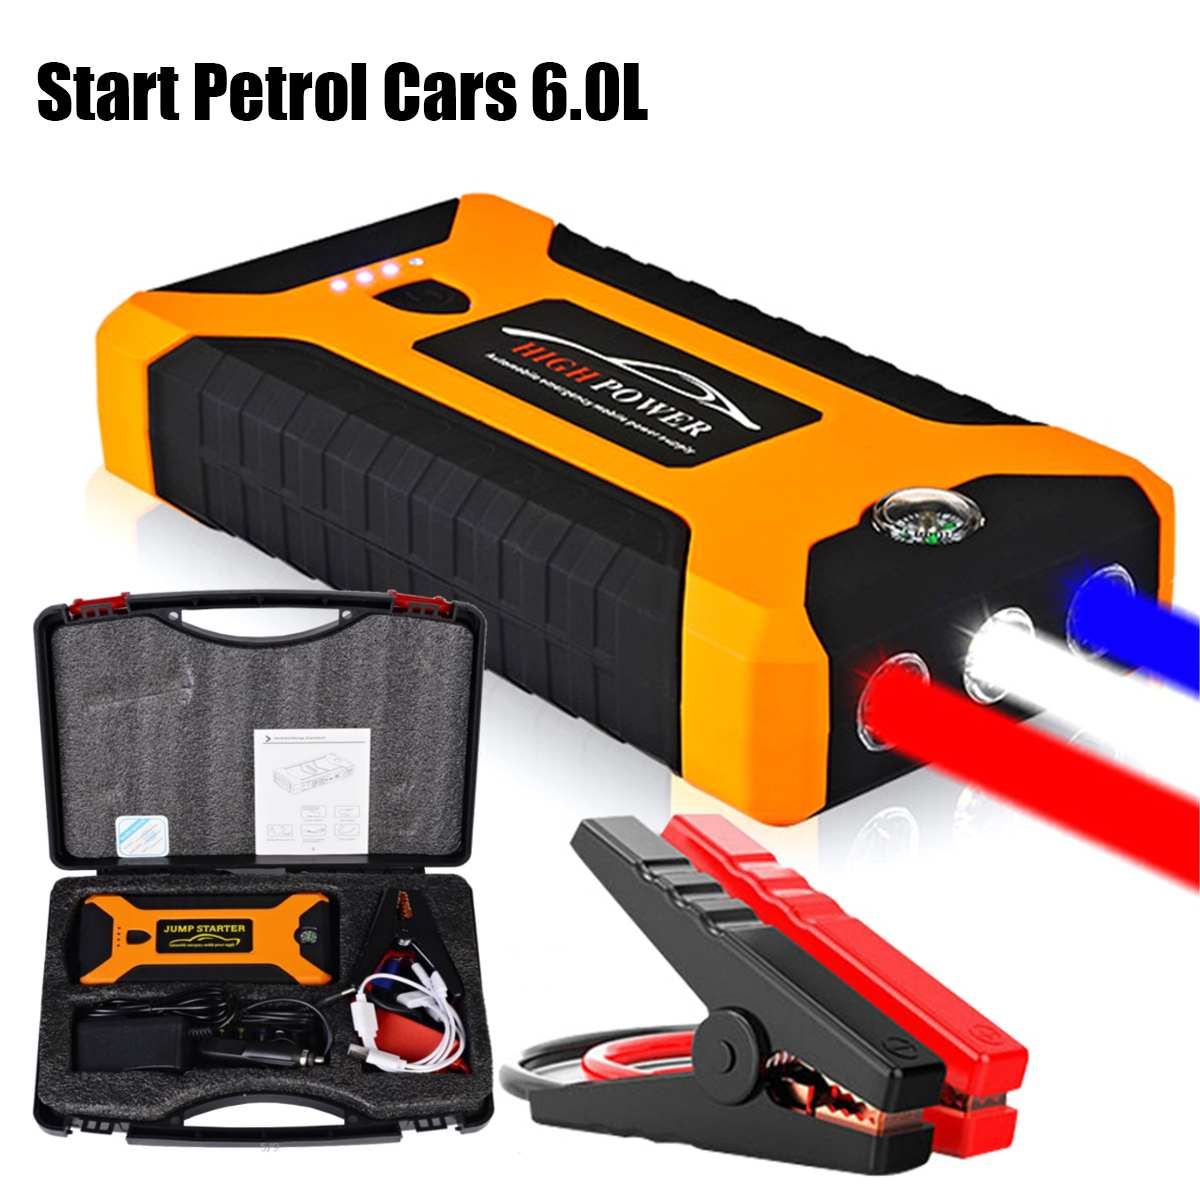 High Capacity 88000mAh Car Jump Starter Power Bank 600A Car Battery Charger Booster Charger 4USB 12V SOS Starting Device multifunction jump starter 89800mah 12v 4usb 600a portable car battery booster charger booster power bank starting device